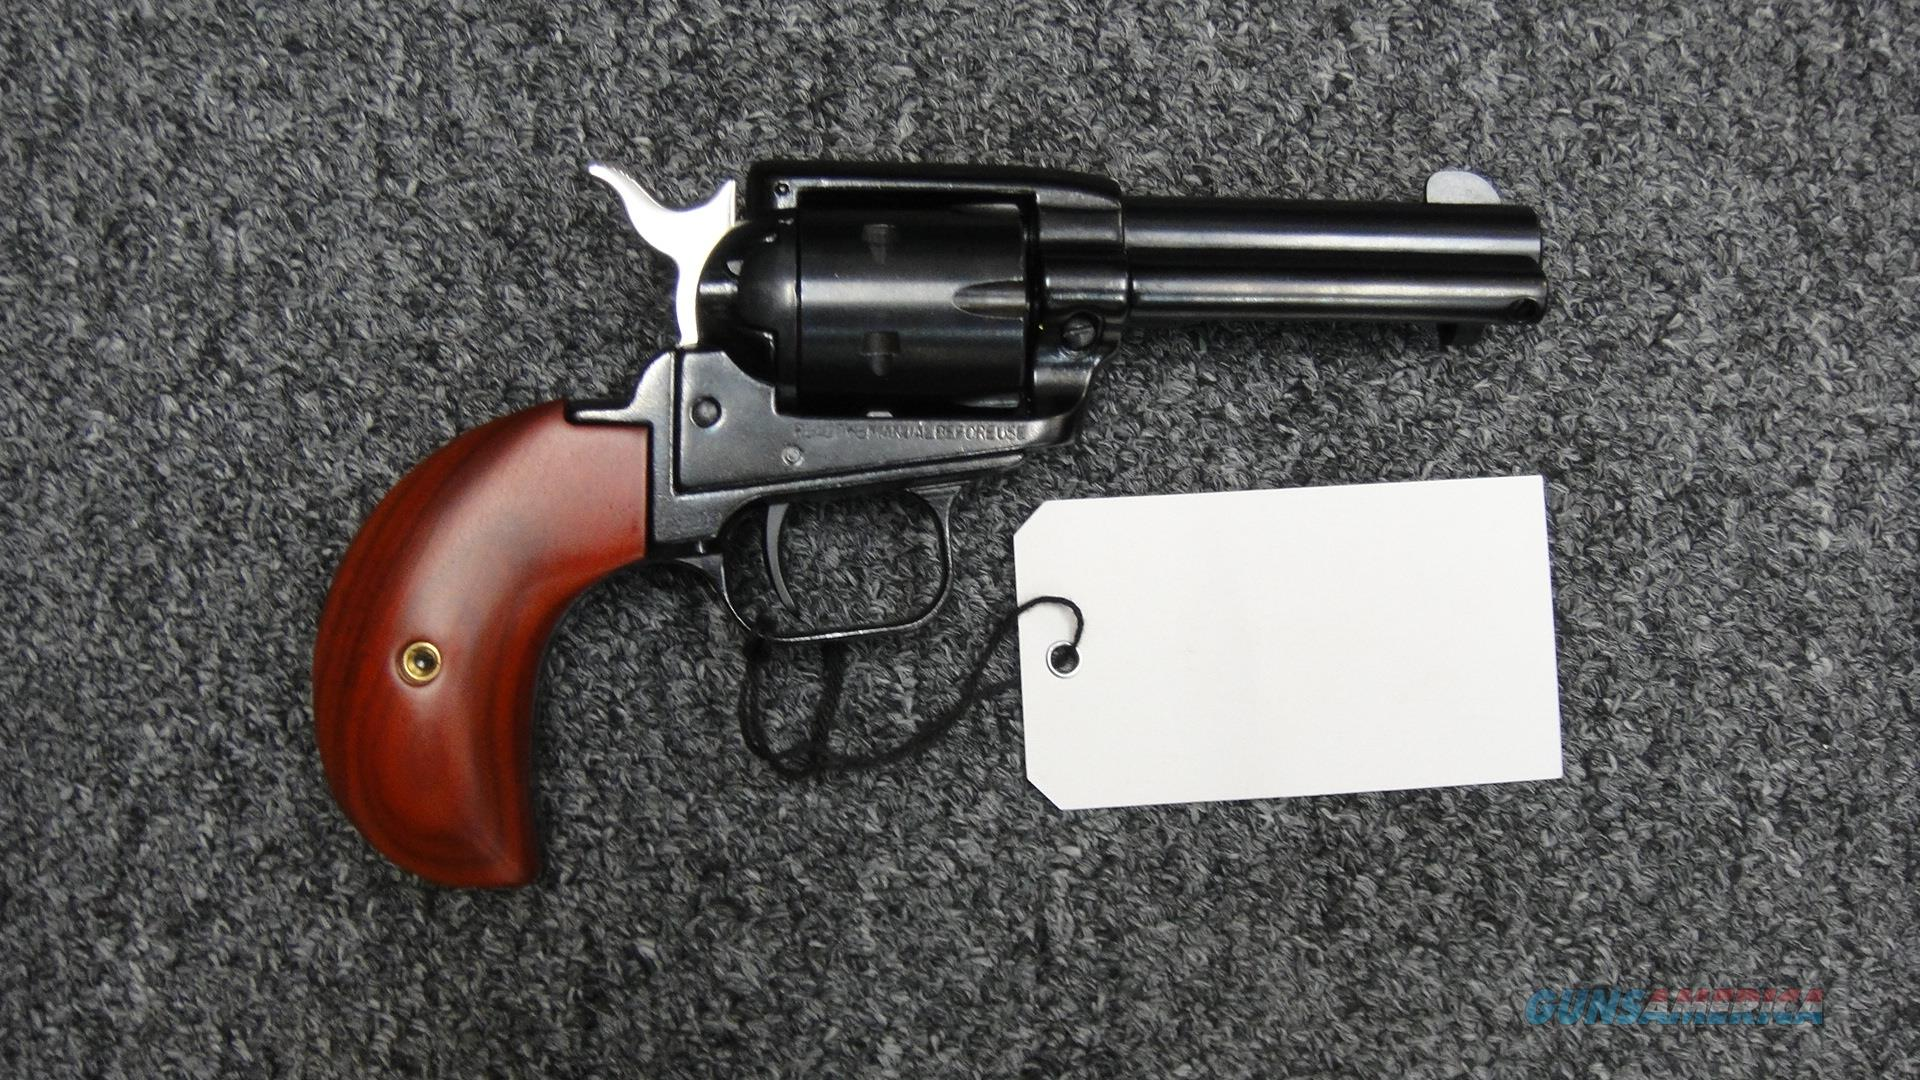 Heritage Mfg Rough Rider SAO revolver .22LR/.22 mag w/ birds head grip  Guns > Pistols > Heritage